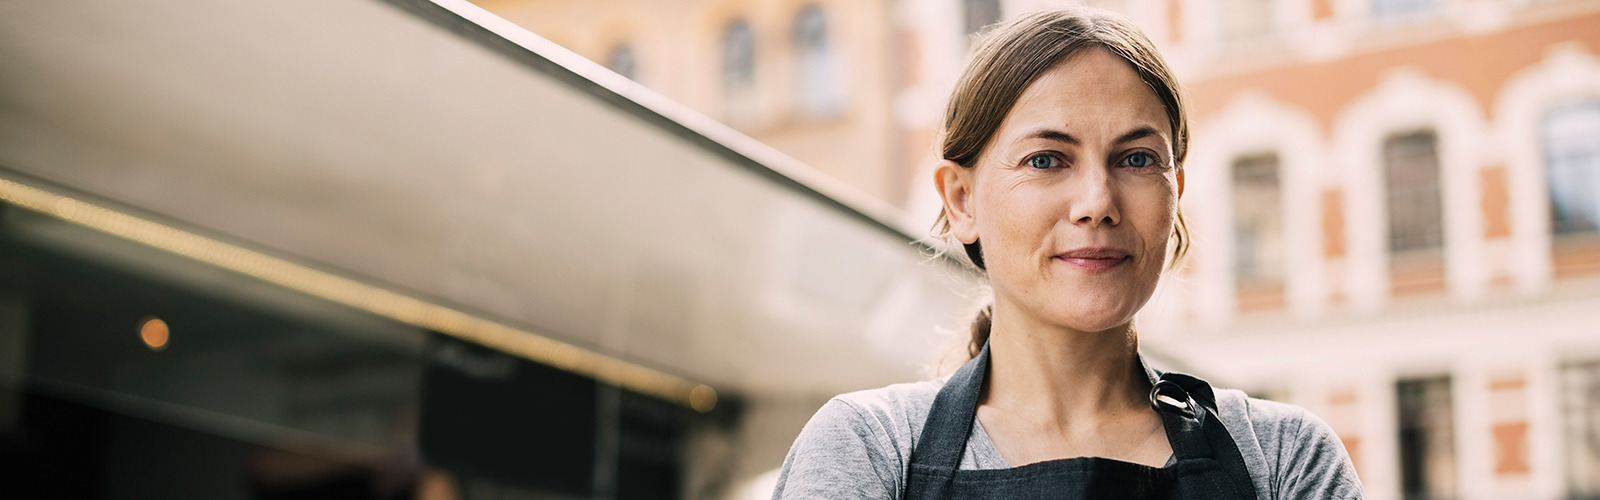 Front view of confident female chef standing by food truck in city